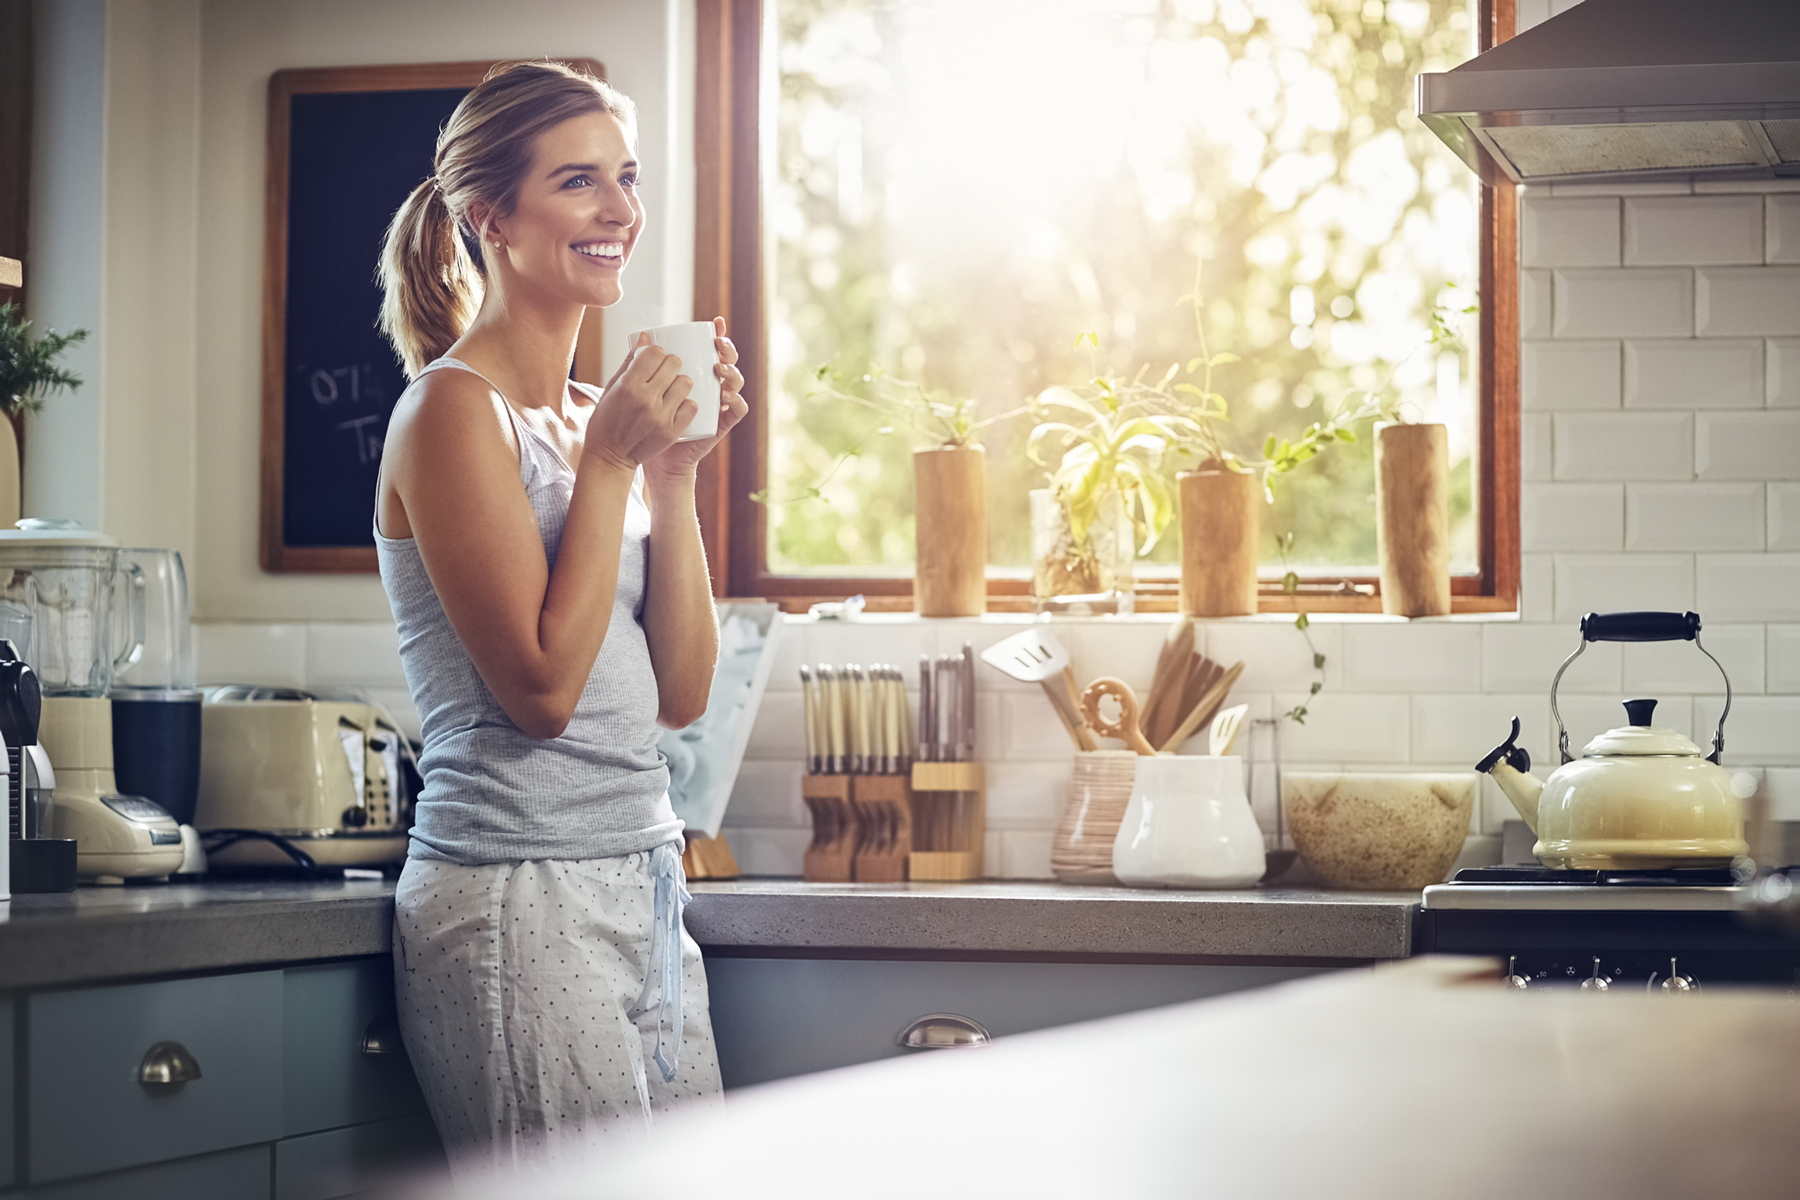 Woman drinking coffee in quiet kitchen with noise-free appliances